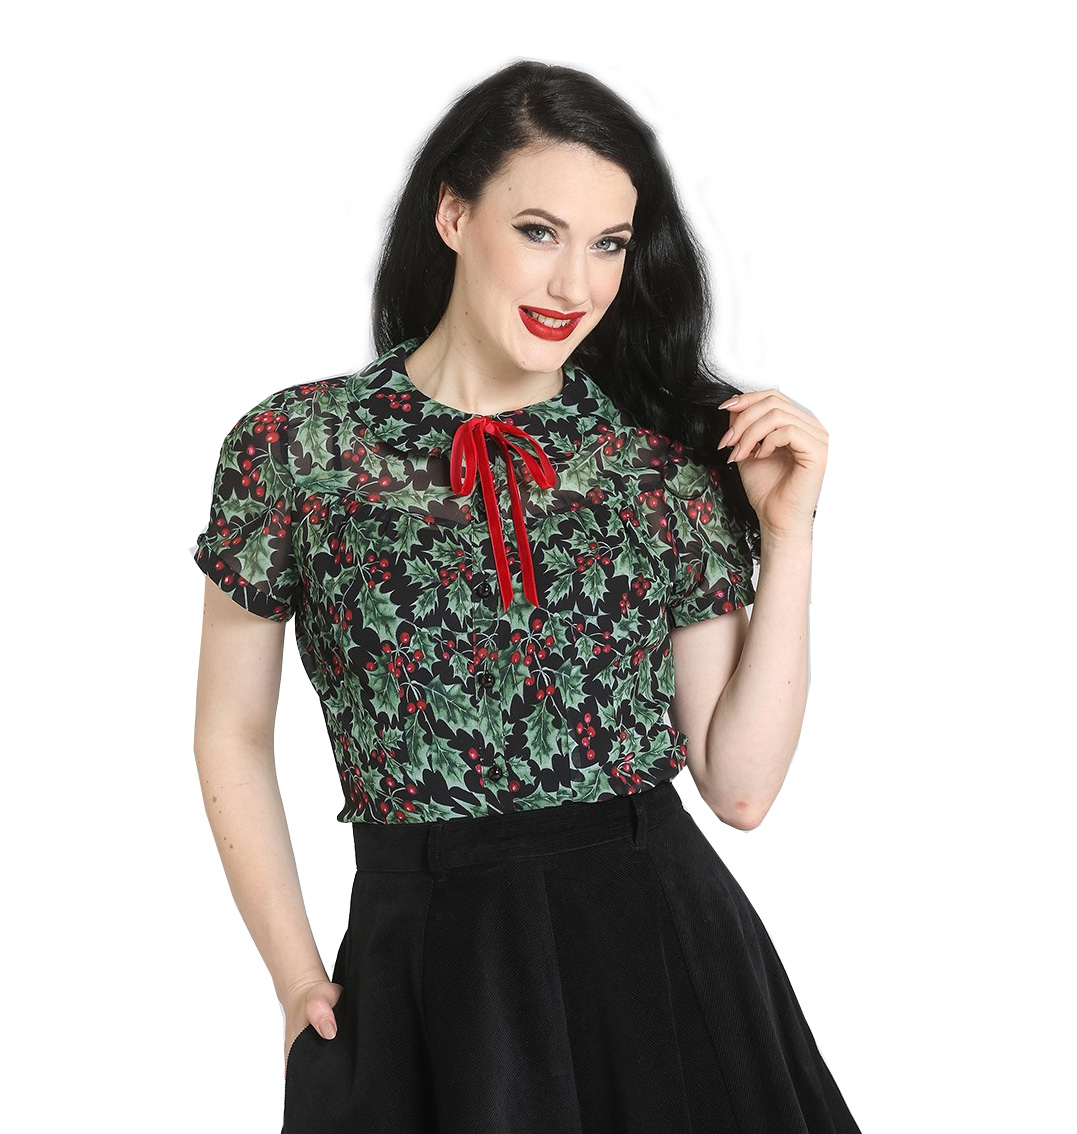 Hell-Bunny-50s-Shirt-Top-Christmas-Festive-HOLLY-Berry-Blouse-Black-All-Sizes thumbnail 9